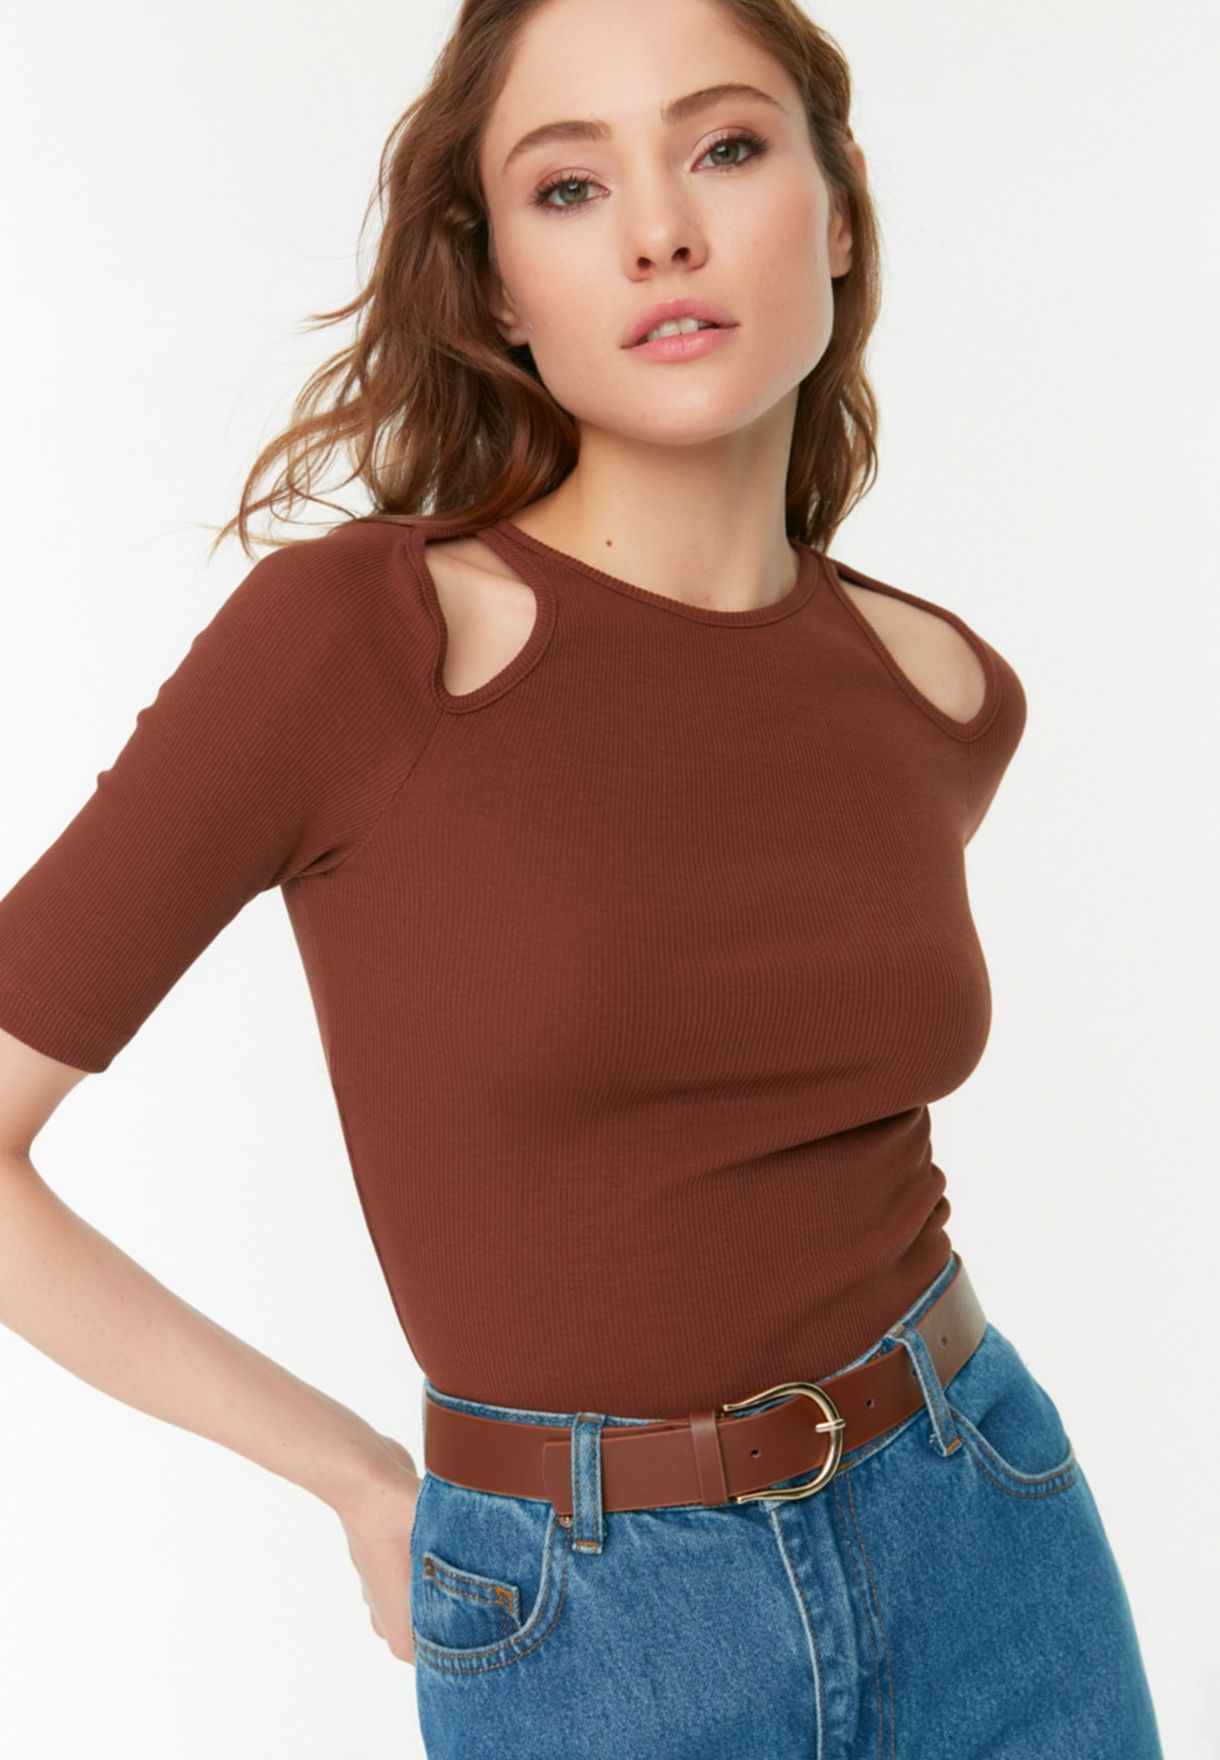 Leather Look Allocated Hole Belt